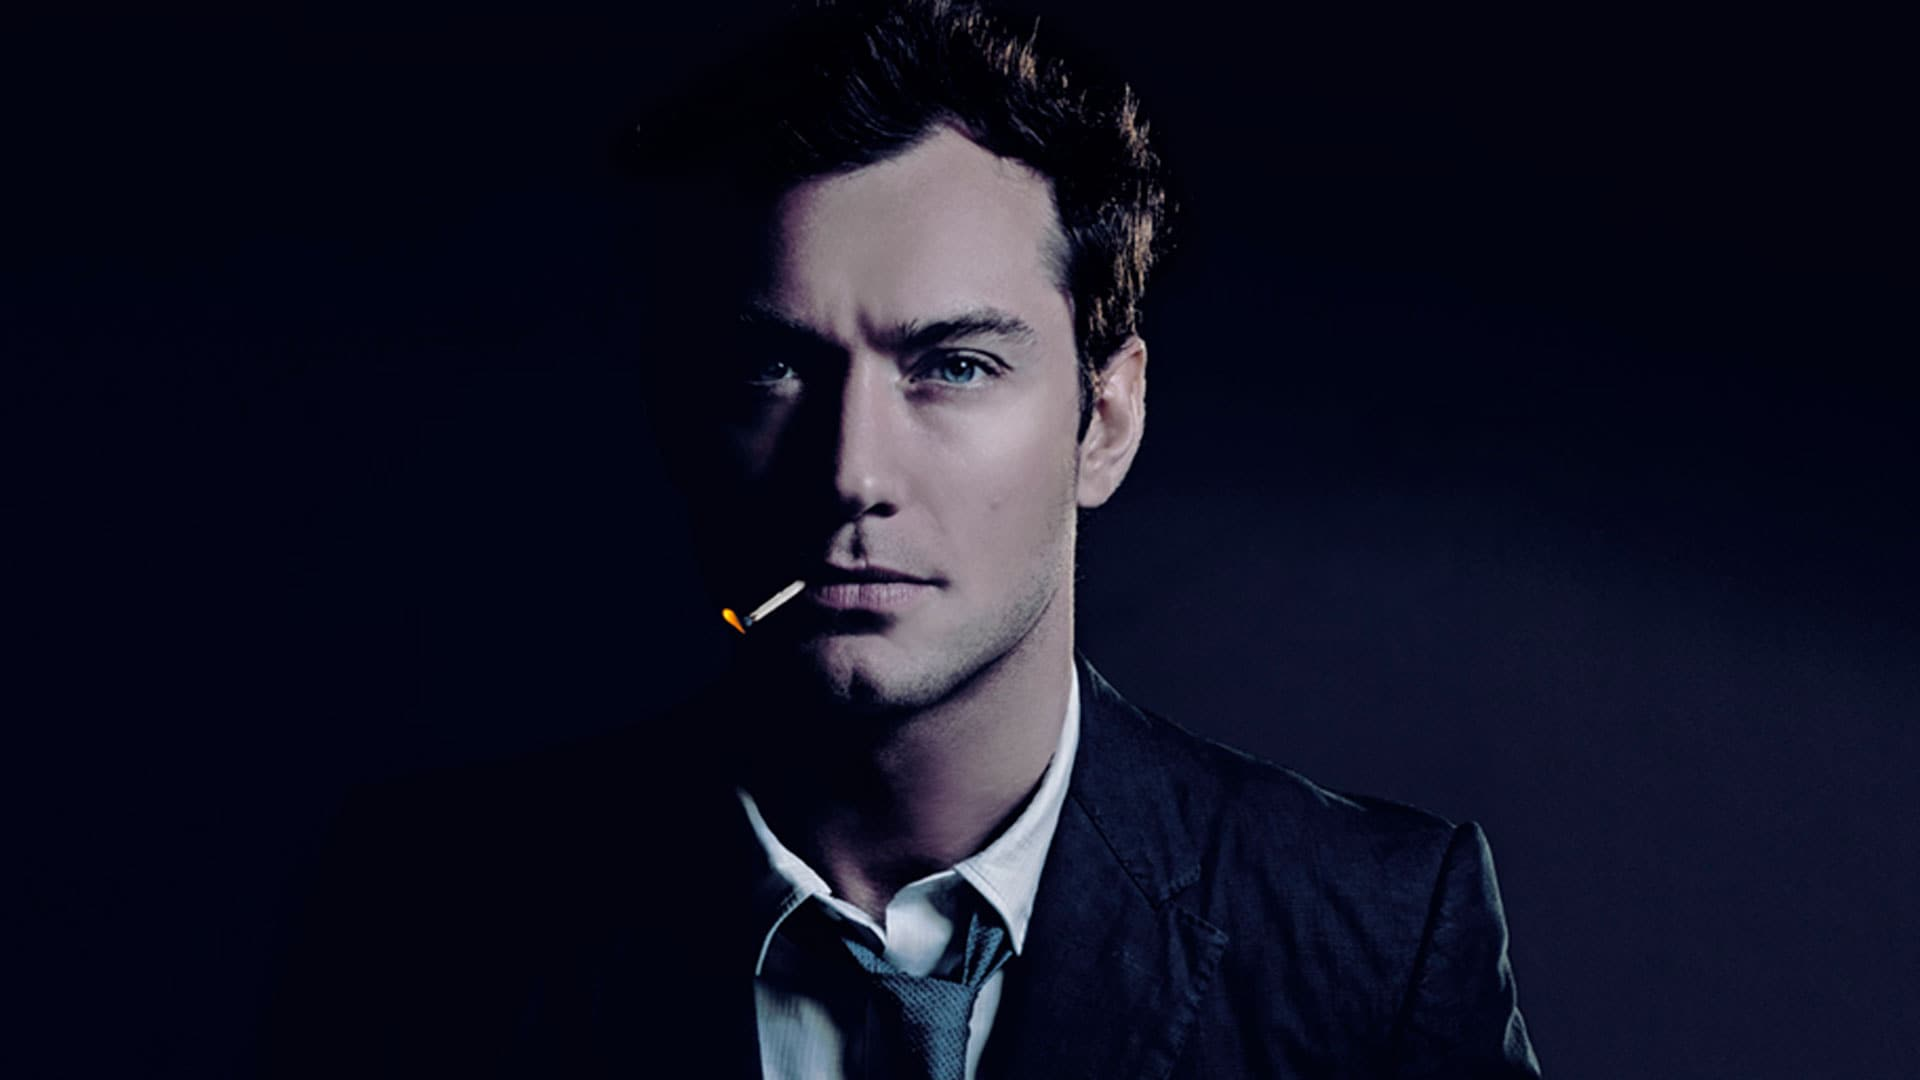 Jude Law: March 13, 2010